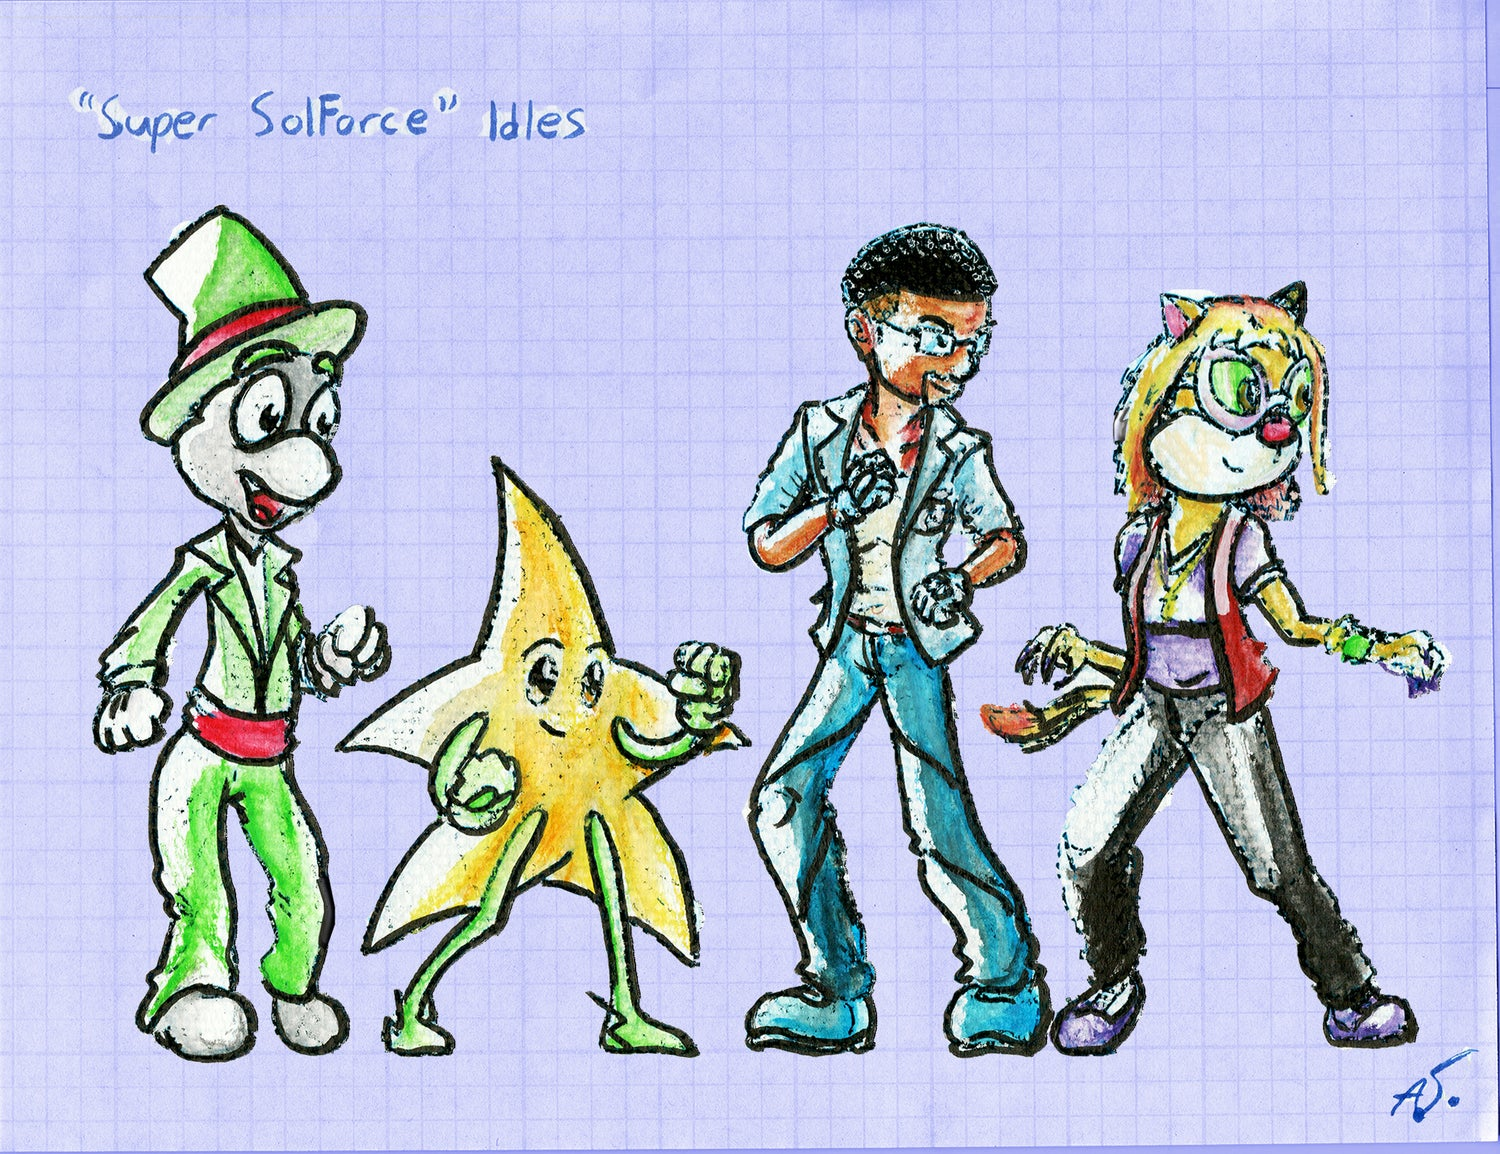 Image of Super SolForce- Idle Stances